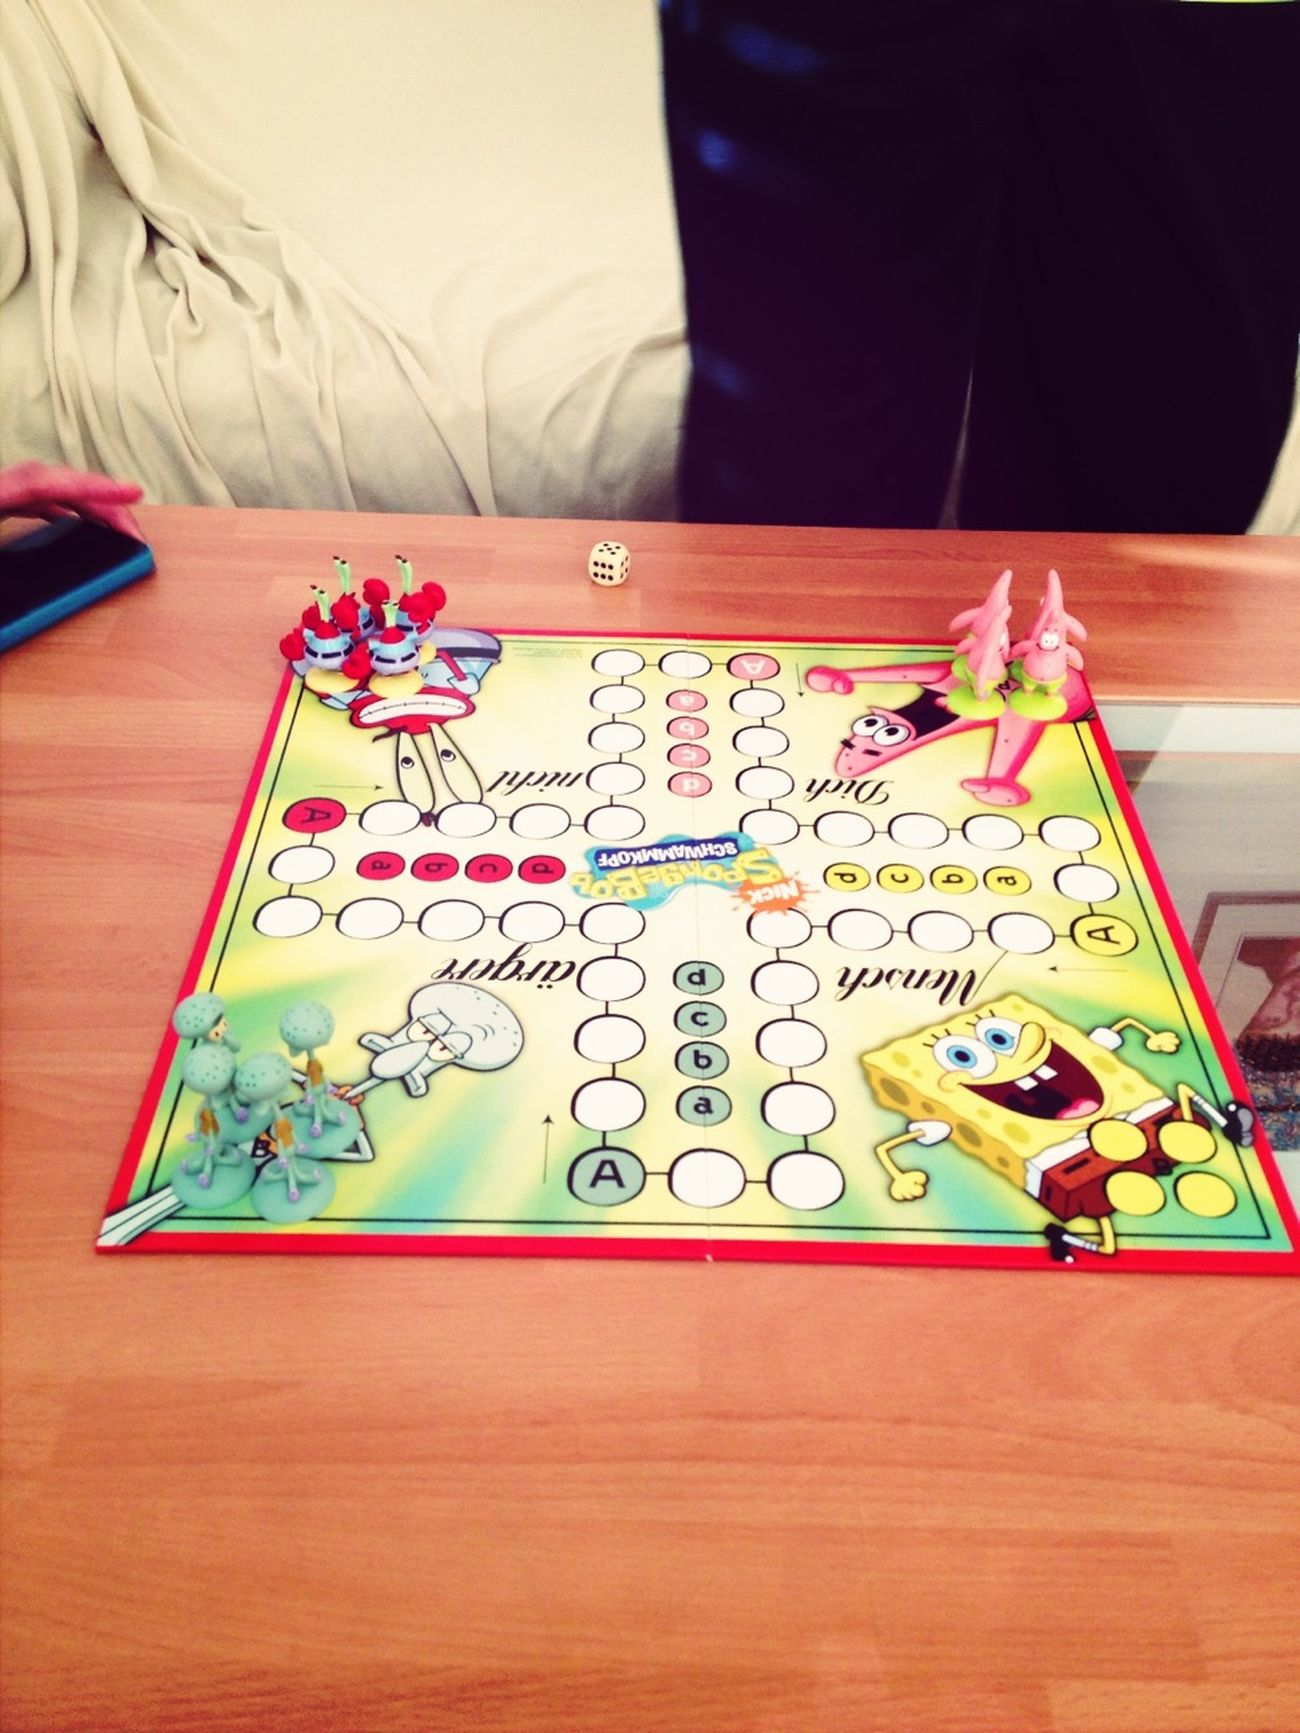 Playing with sister and brother☺